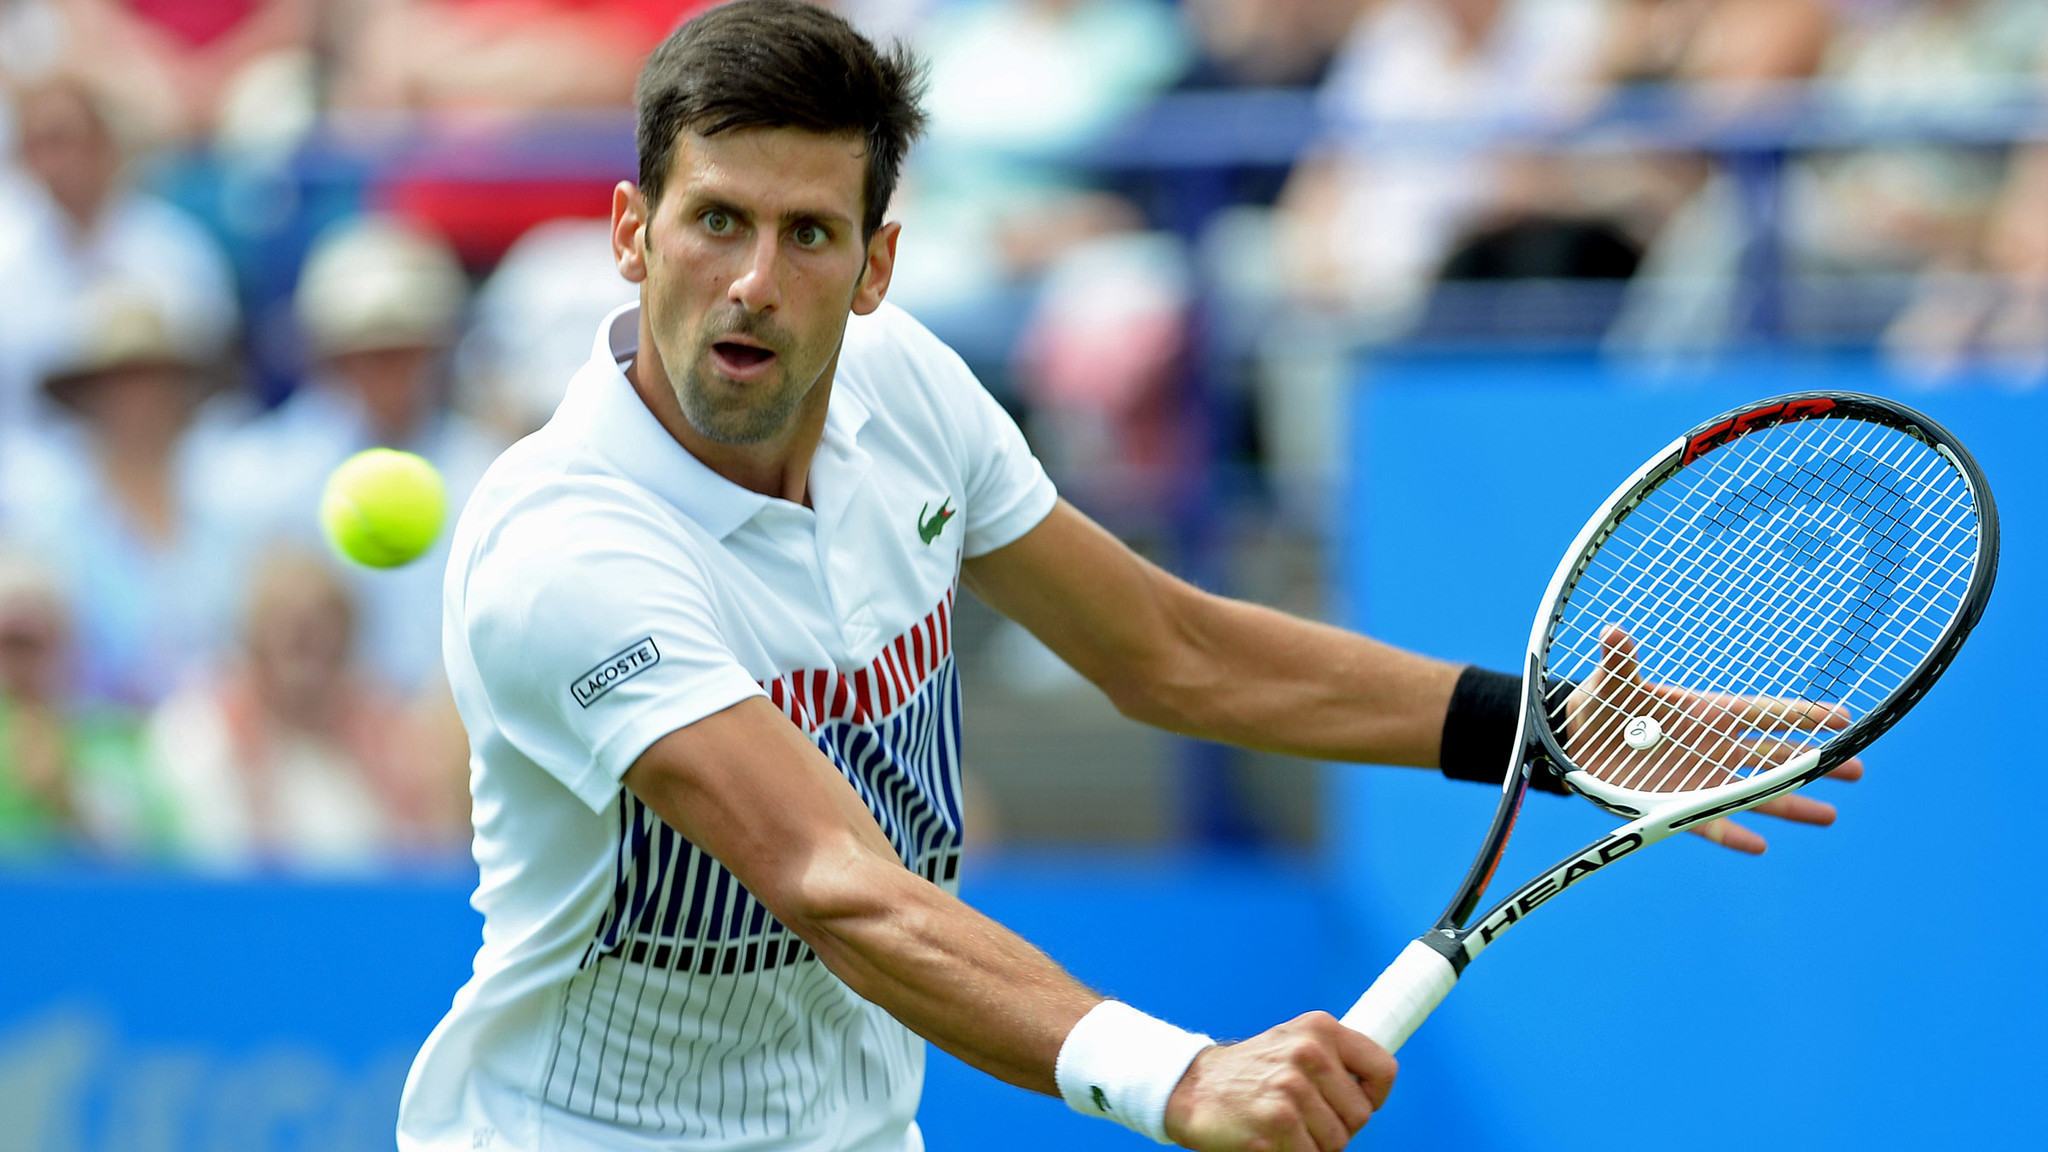 Novak Djokovic wins Wimbledon warmup tournament in Eastbourne LA